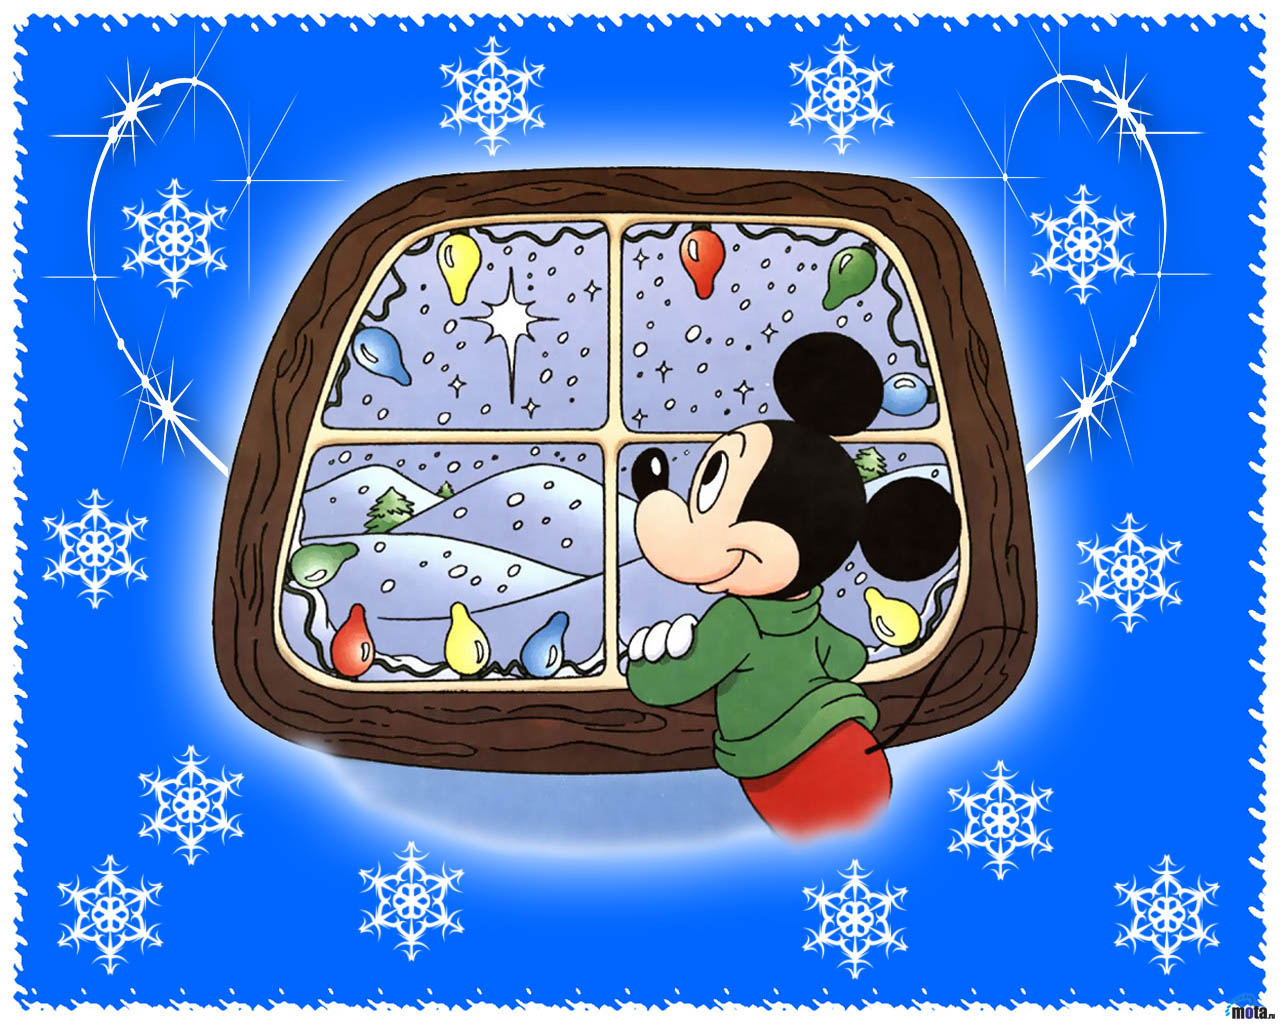 Beautiful Wallpaper Christmas Mickey Mouse - 21-The-best-top-christmas-wallpapers-mickey-mouse-looking-at-the-window-wallpaper  Perfect Image Reference_539779 .jpg